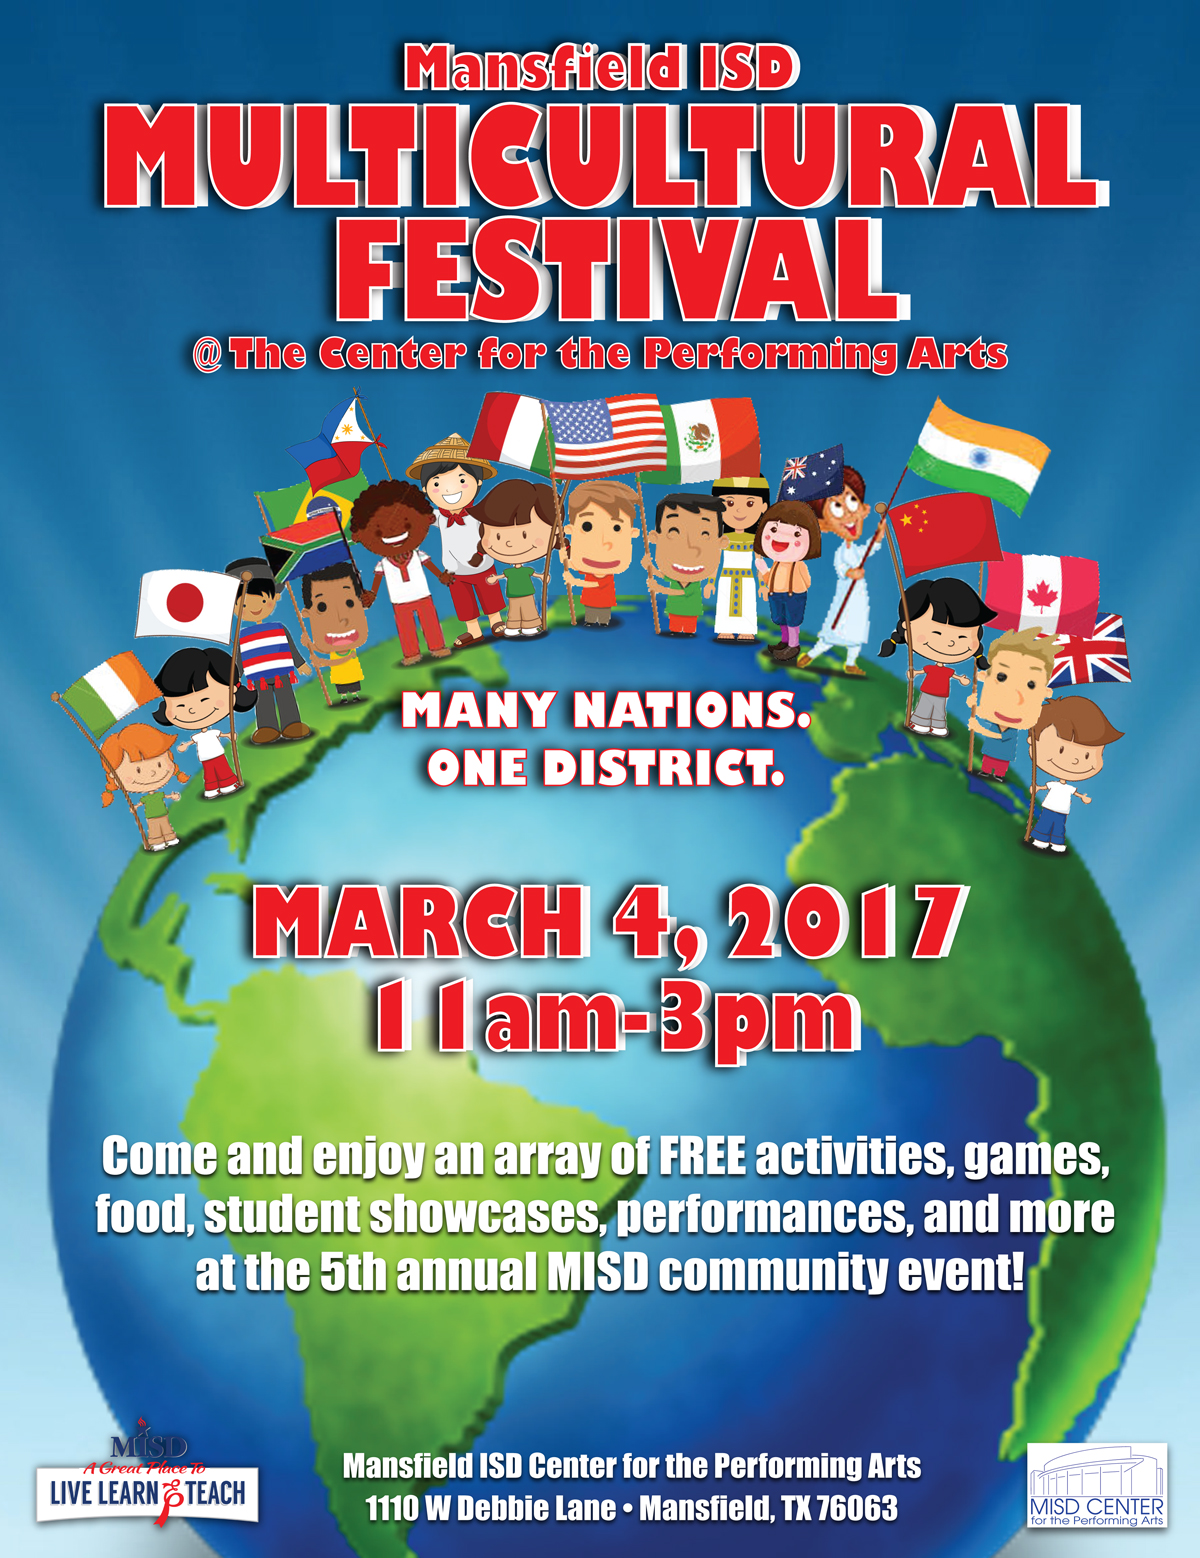 Mansfield-ISD-Multicultural-Festival-2017L